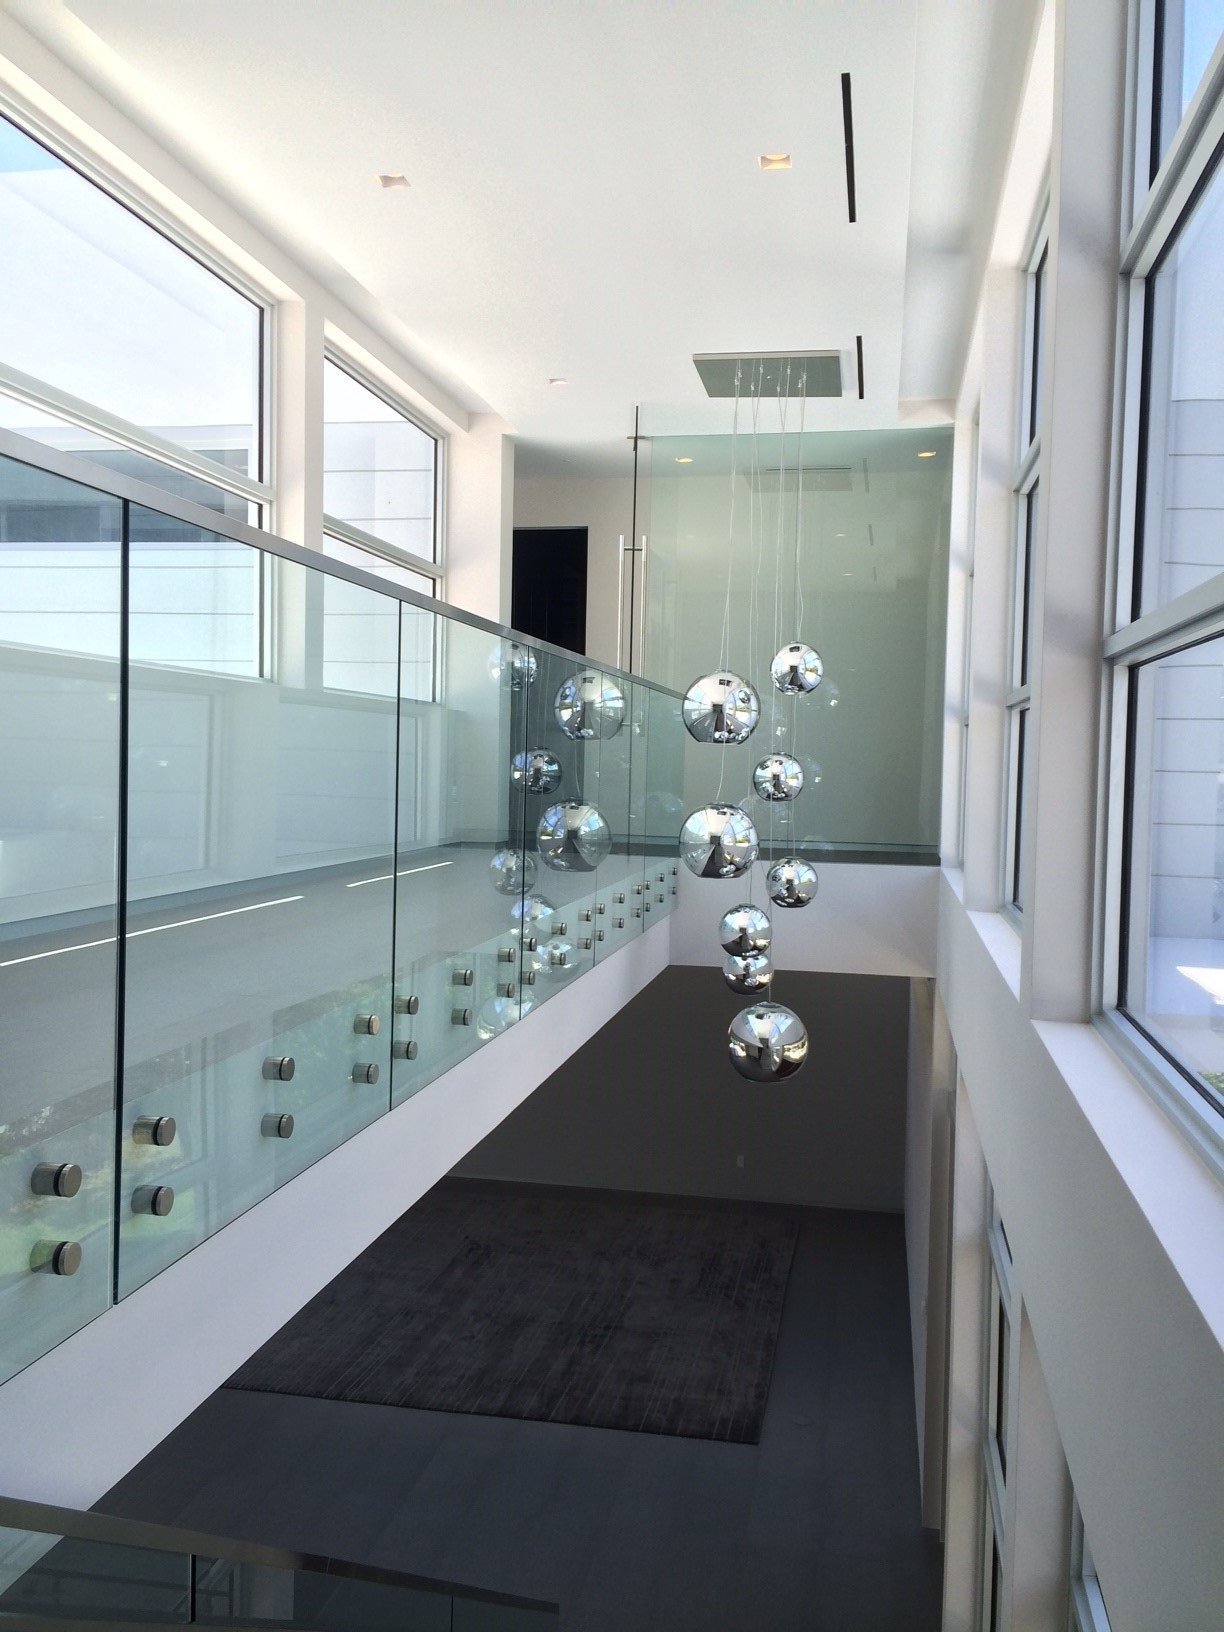 13-291Los Pinos Circle Shop Dwgs Glass Railing Glass Railings of Miami Coral Gables 04